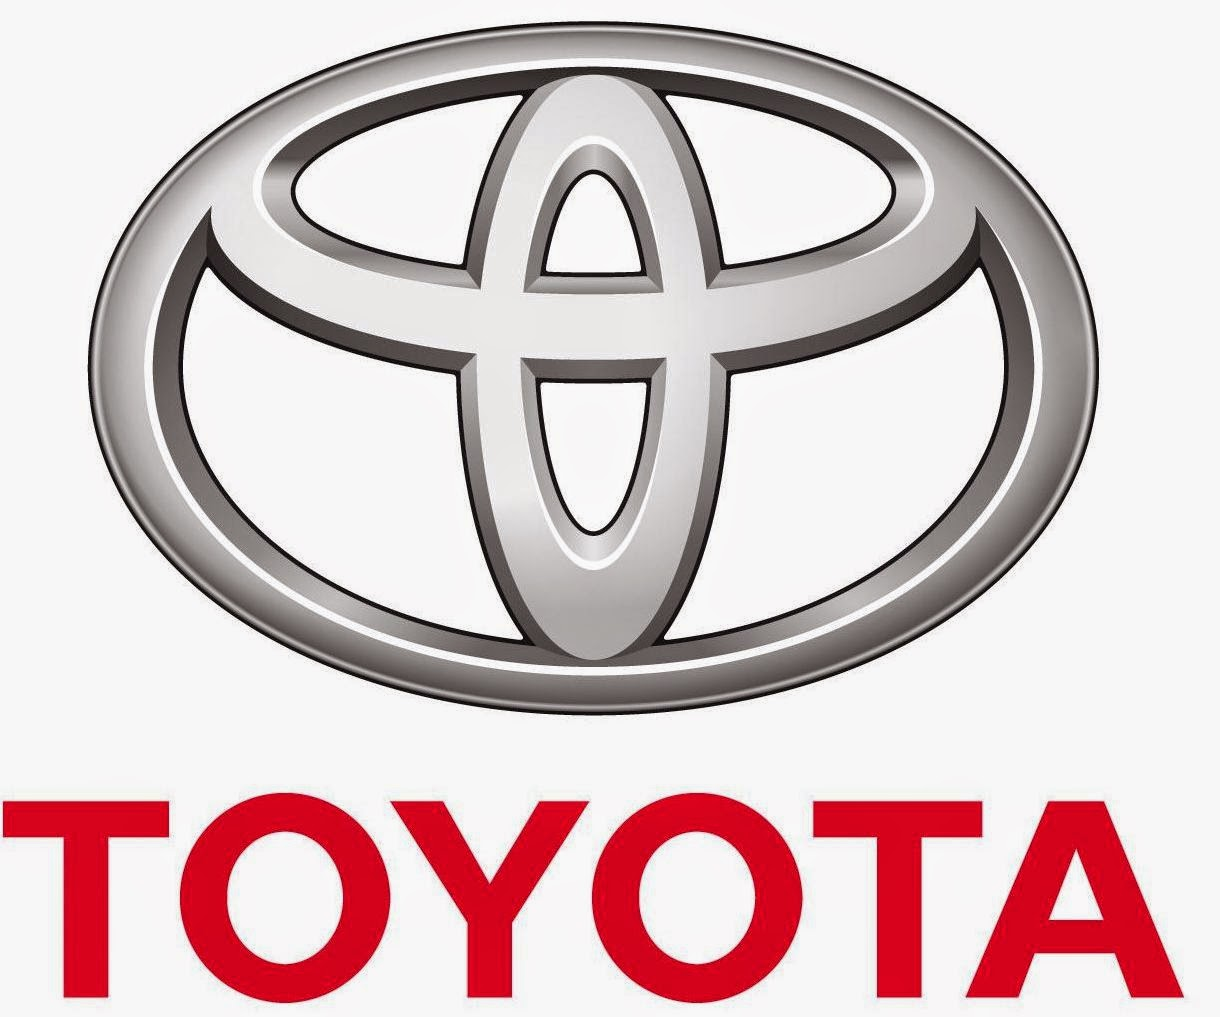 jit production in toyota In-time (jit) production system used at toyota however, there is more to  successfully implementing jit than studying the system itself the steps for  introducing.